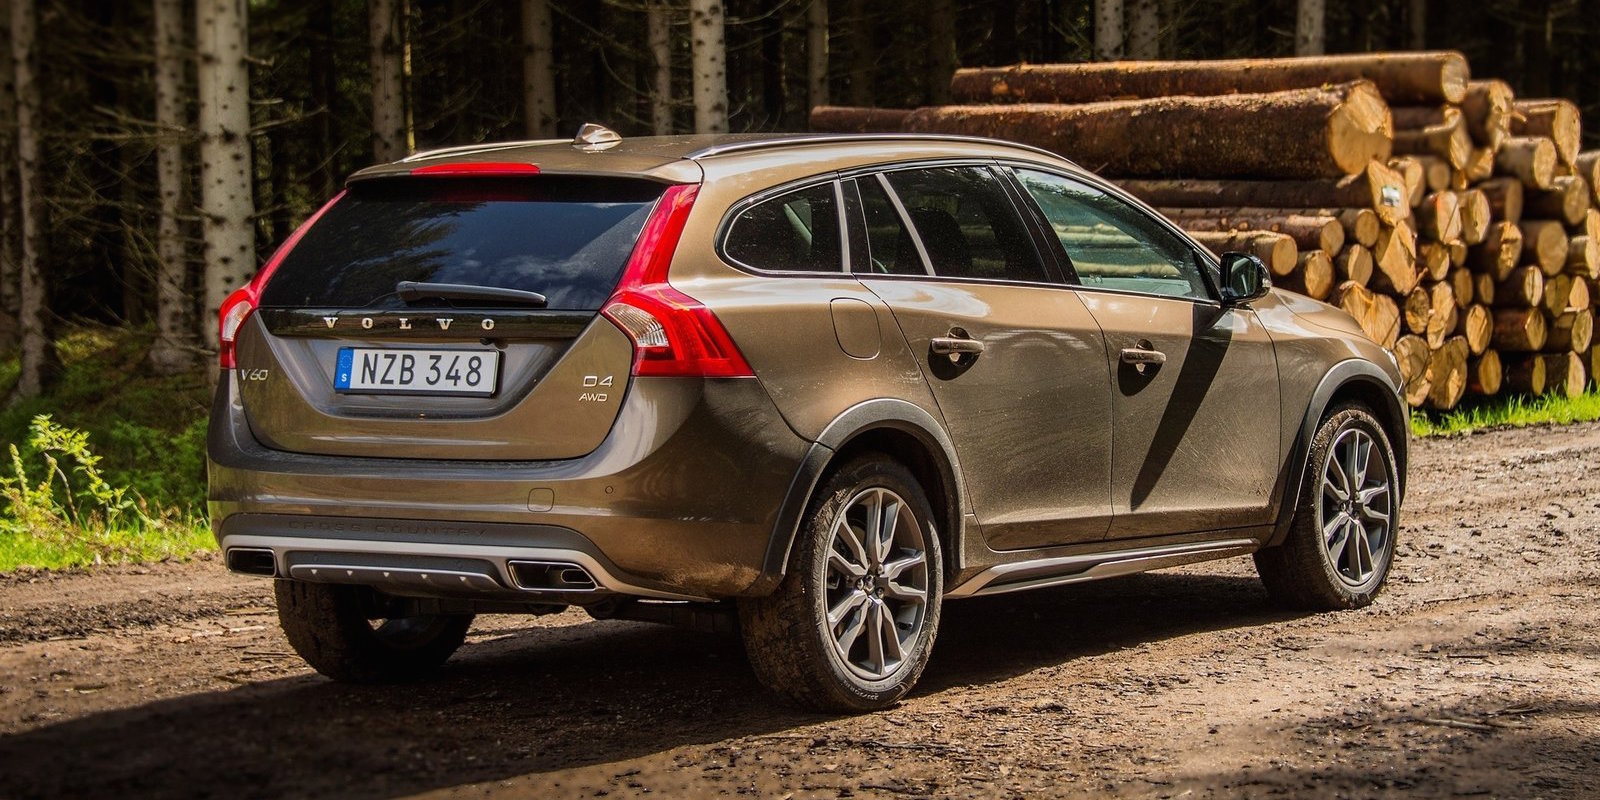 volvo v60 cross country pricing and specifications photos 1 of 3. Black Bedroom Furniture Sets. Home Design Ideas